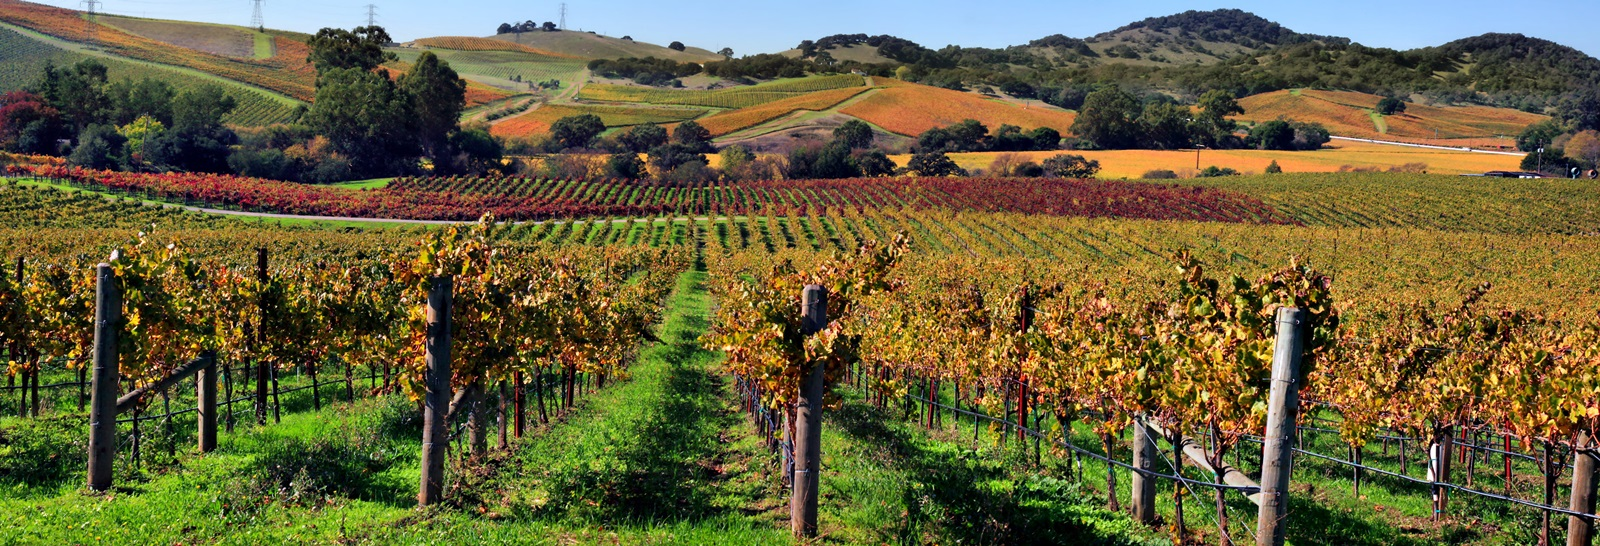 Day Trips from Sacramento: 9 Places so Great You Might Just Move There